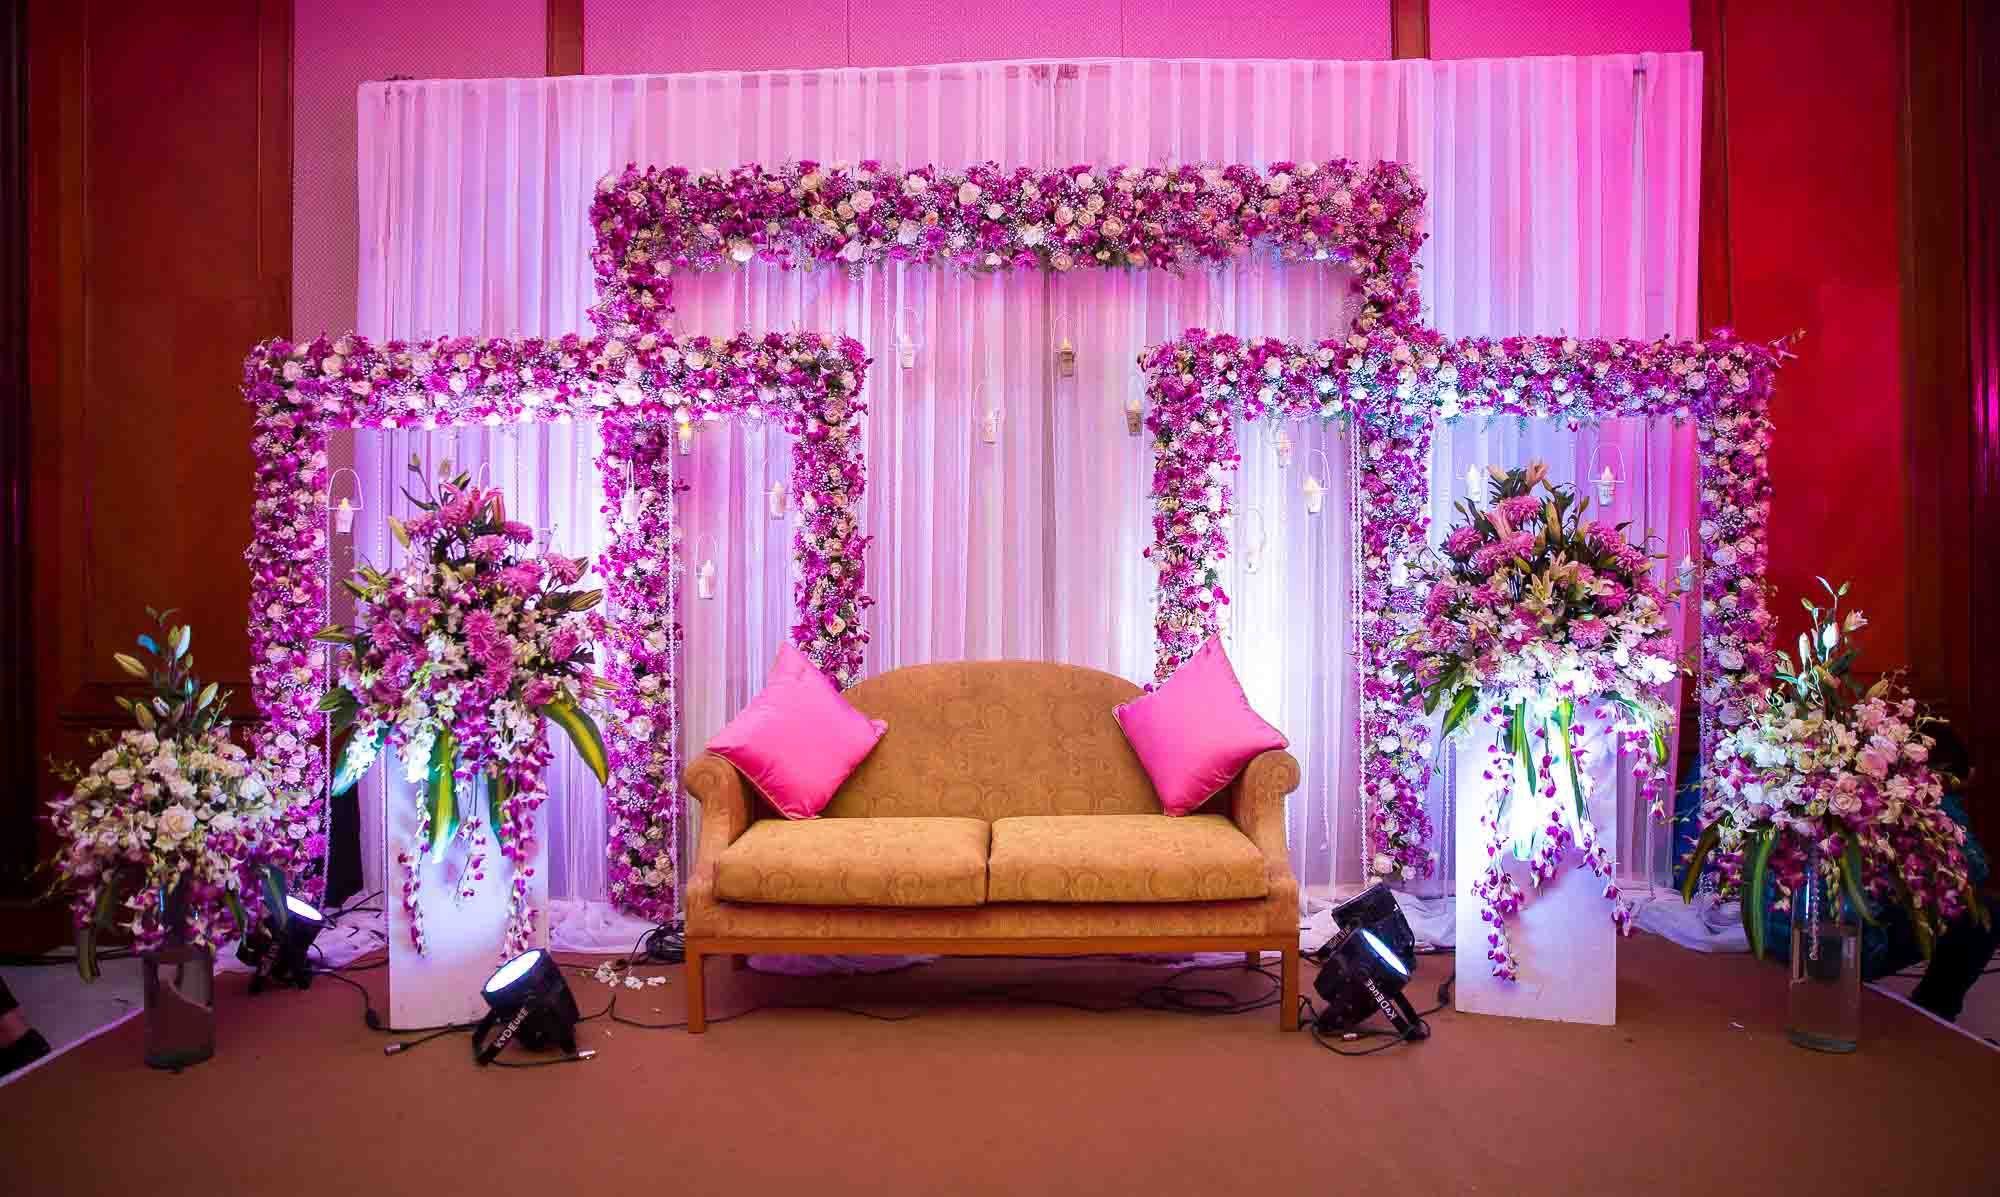 Beautiful backdrop for indoor weddings | Engagement stage decoration,  Wedding stage decorations, Wedding stage design